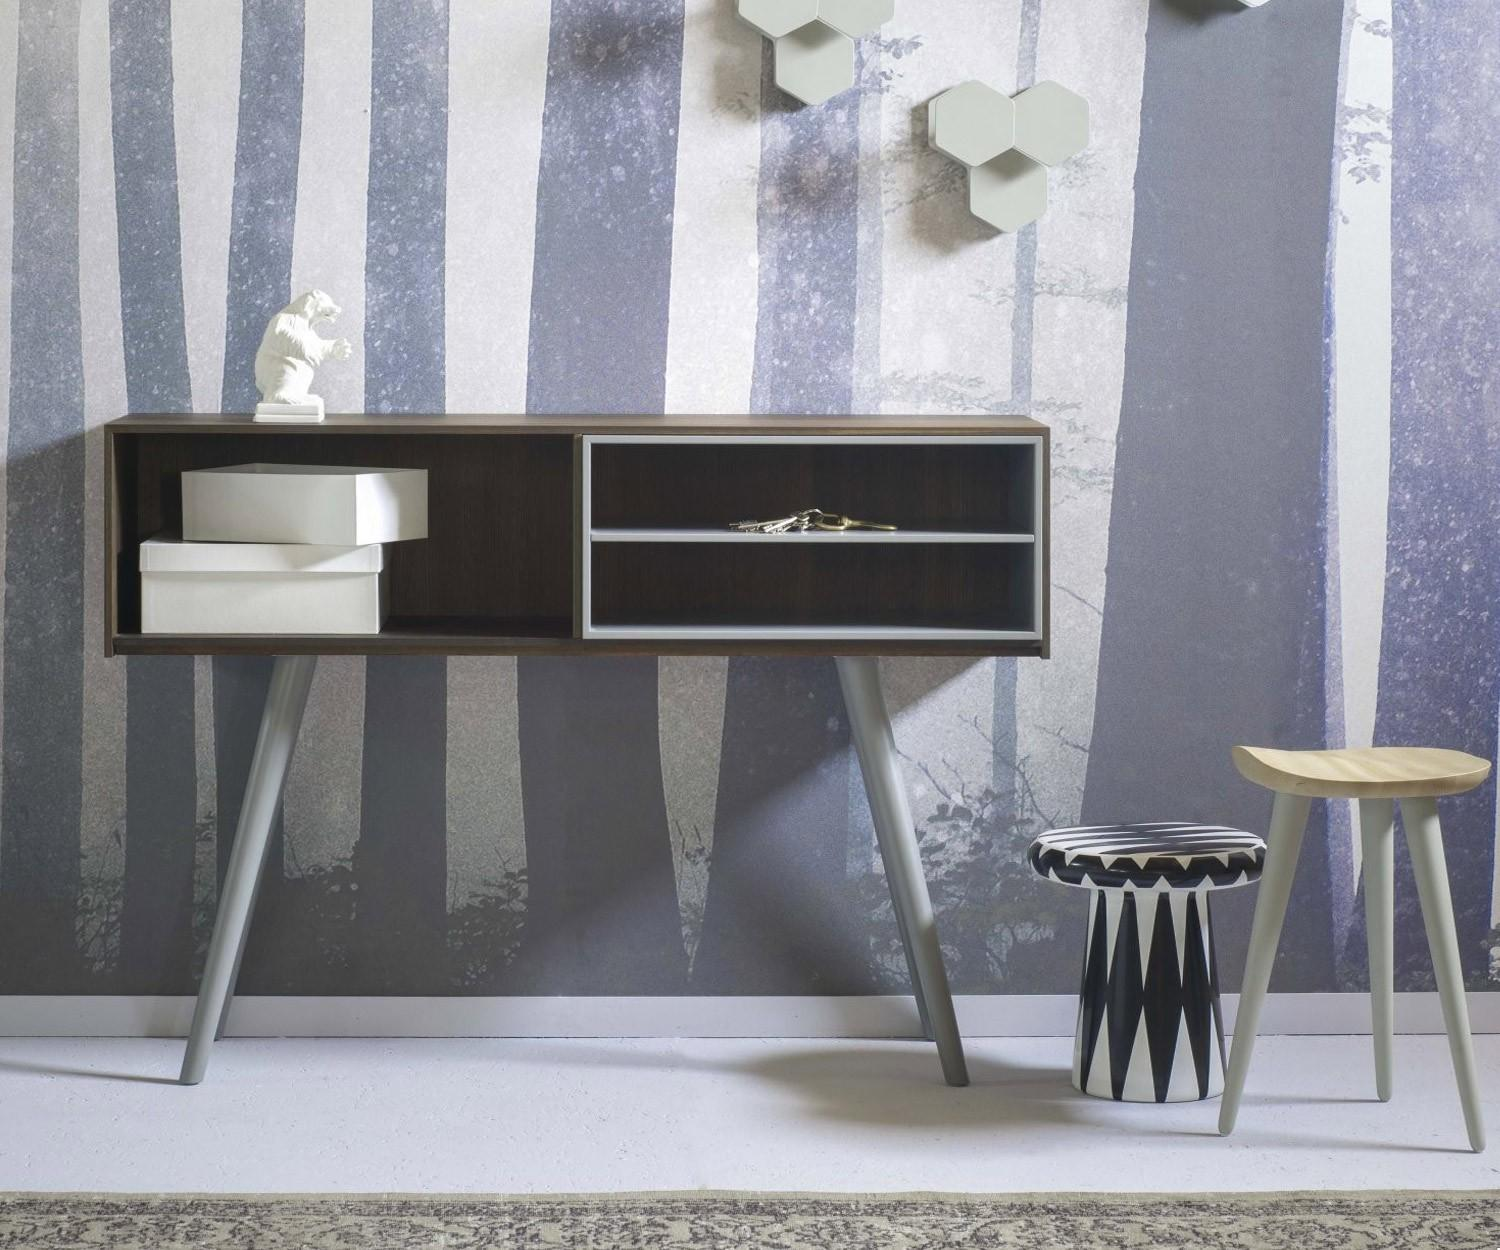 miniforms schmale konsole olivia f r den flur. Black Bedroom Furniture Sets. Home Design Ideas